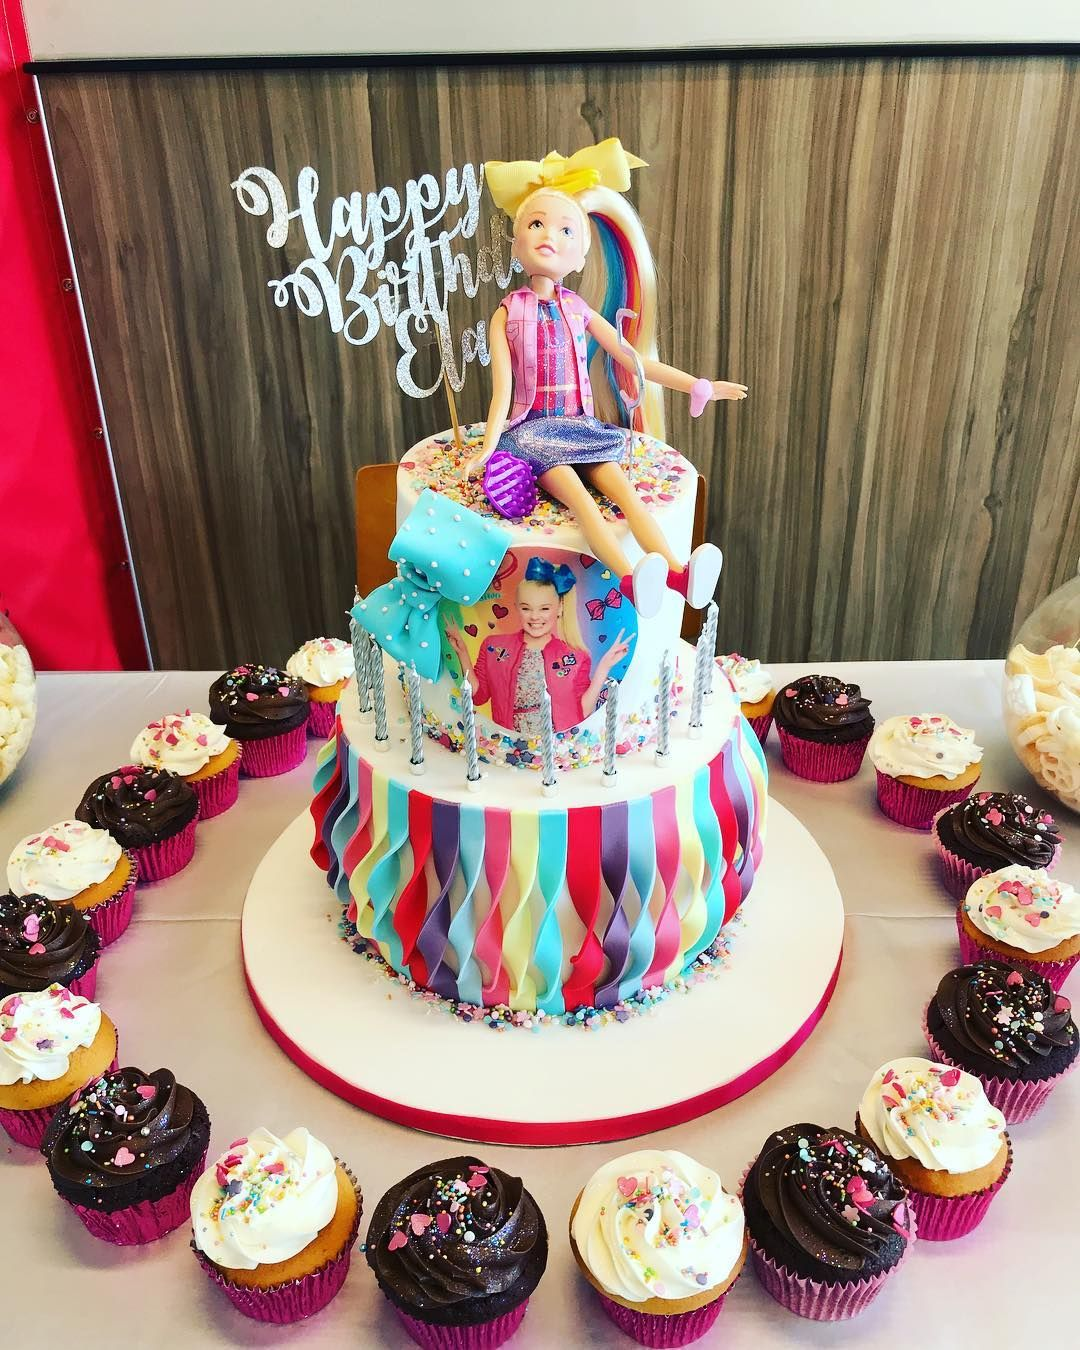 b24674fd213 Jojo Siwa birthday party ideas. Jojo Siwa cake and cupcakes.